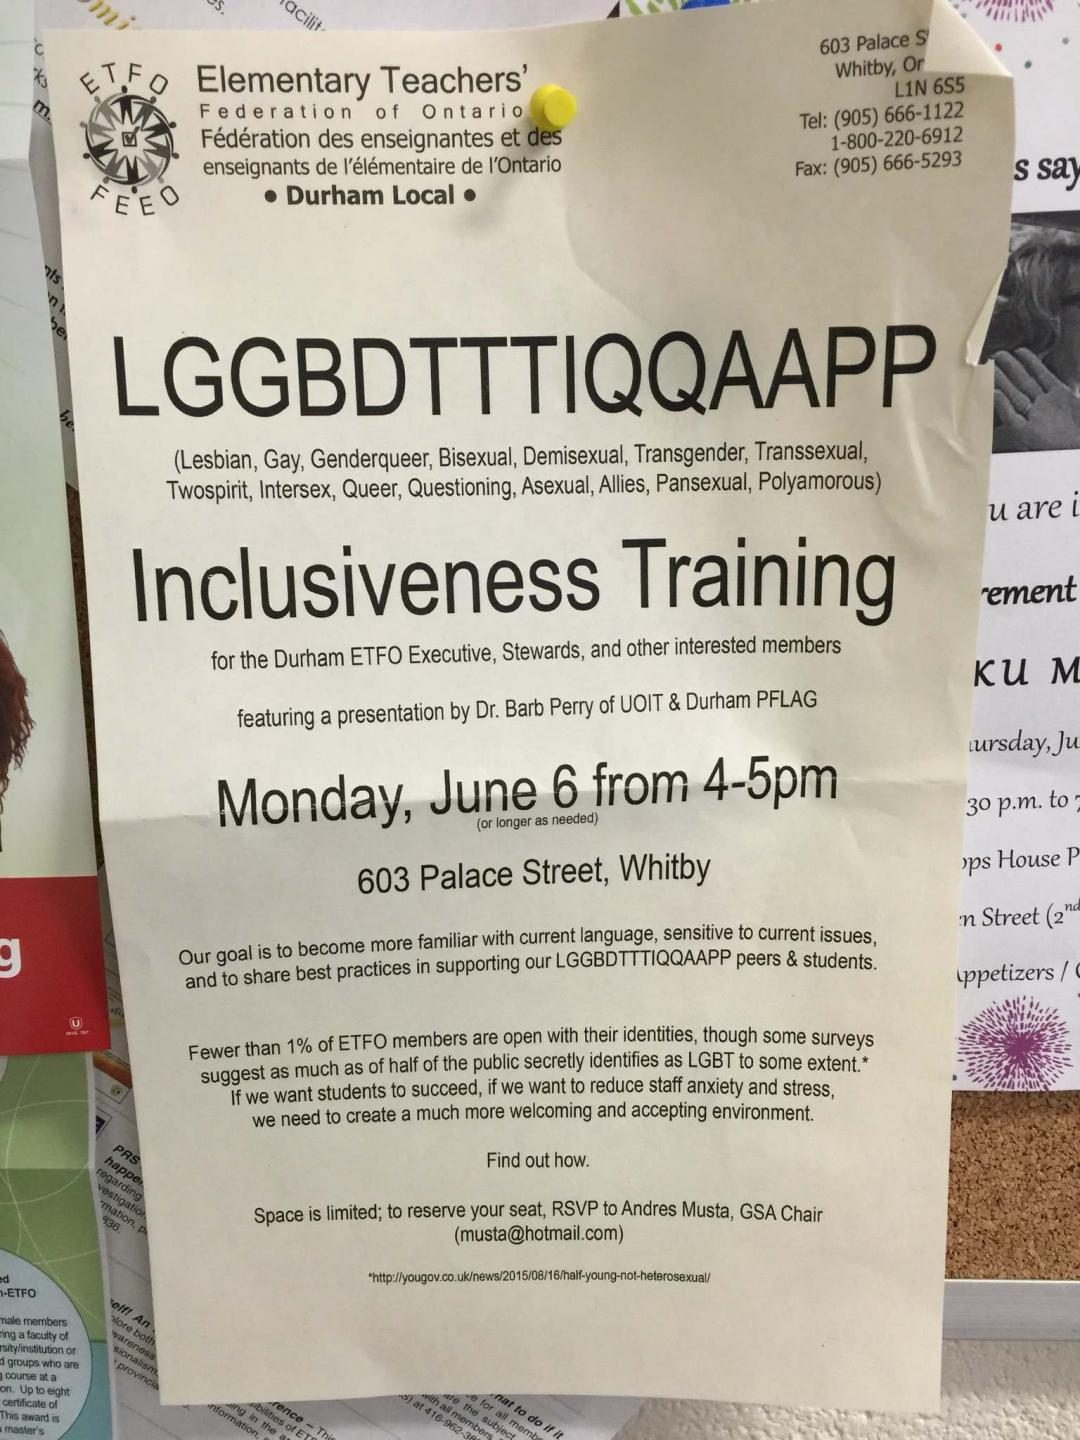 What does lgbtqia mean what acronym stands for